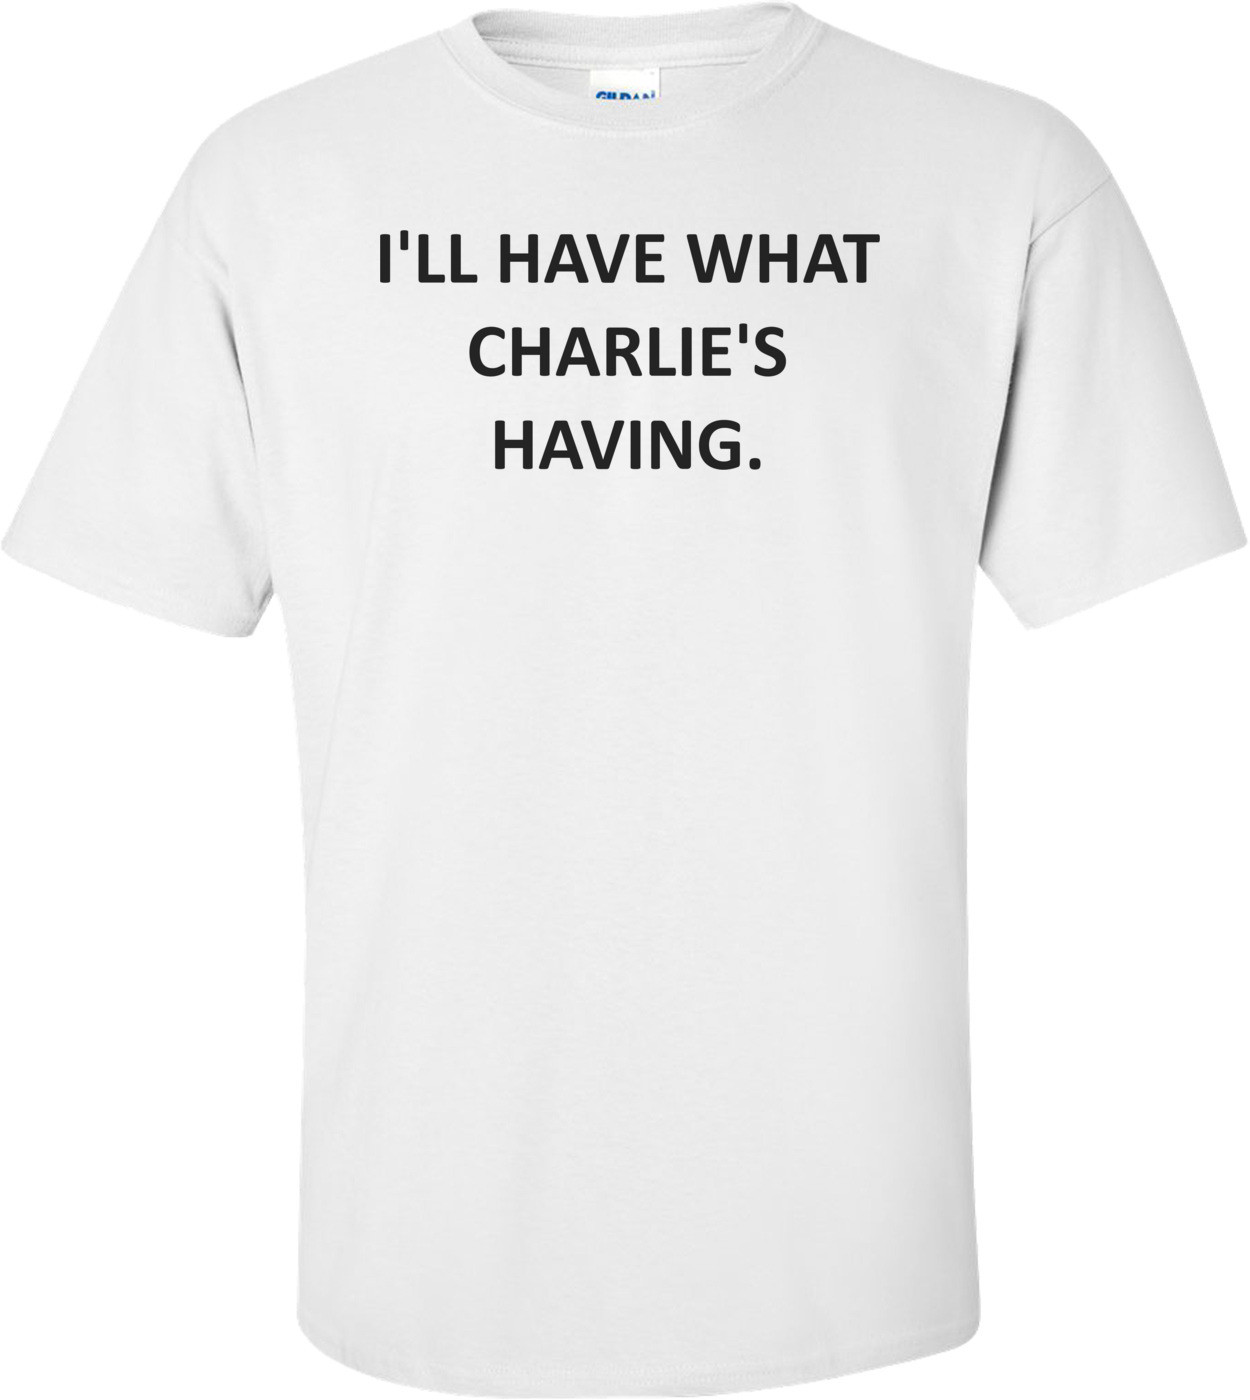 I'LL HAVE WHAT CHARLIE'S HAVING. Shirt